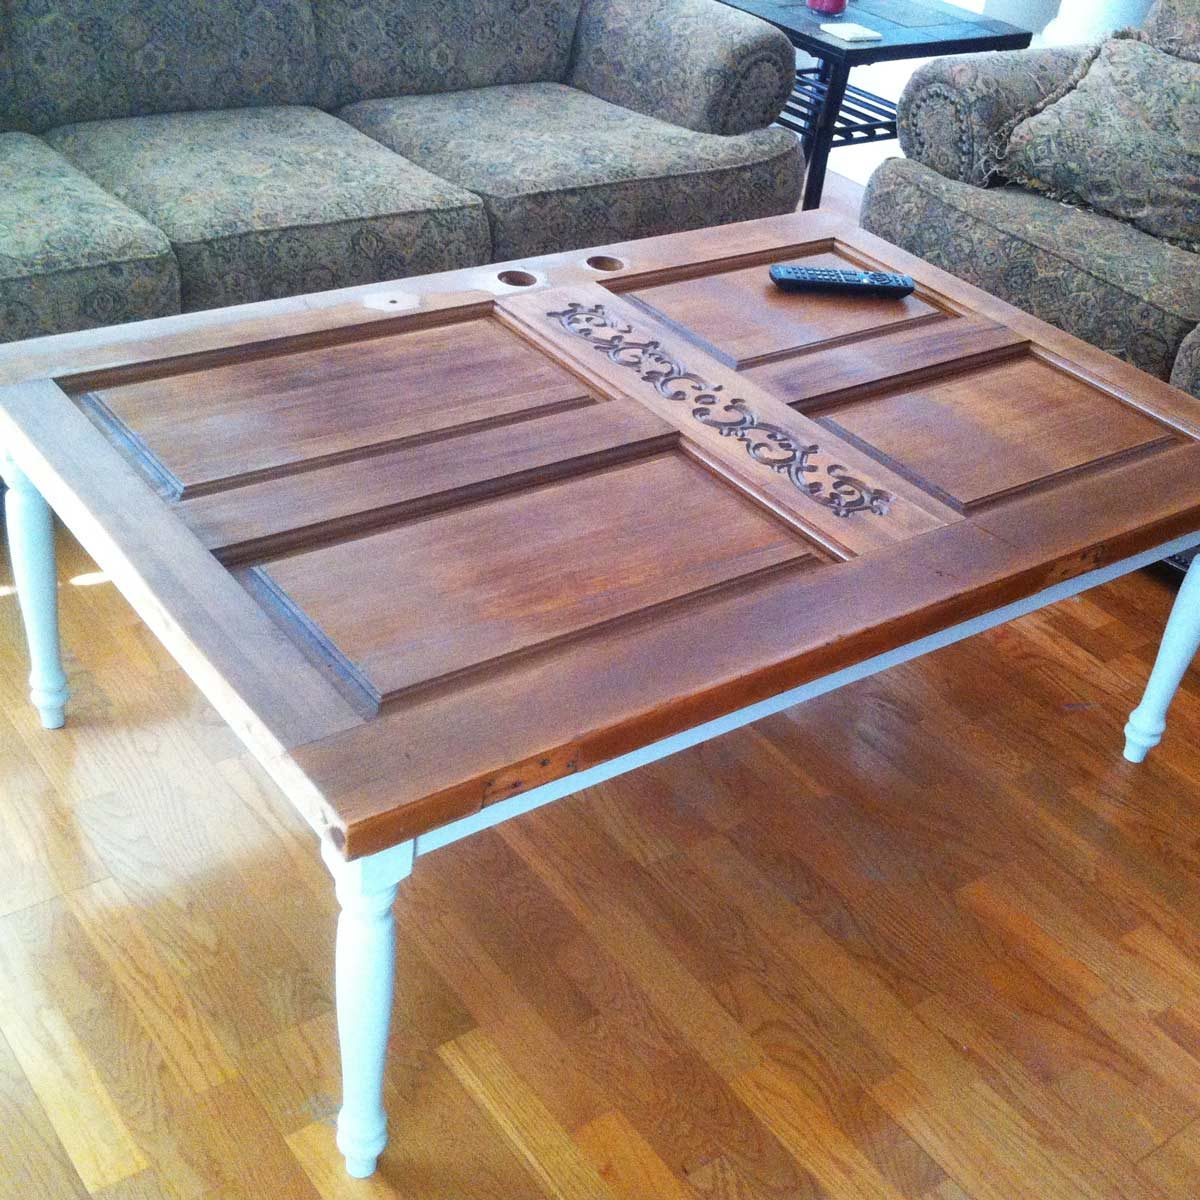 Dfh1 Doortable Homemade Coffee Table